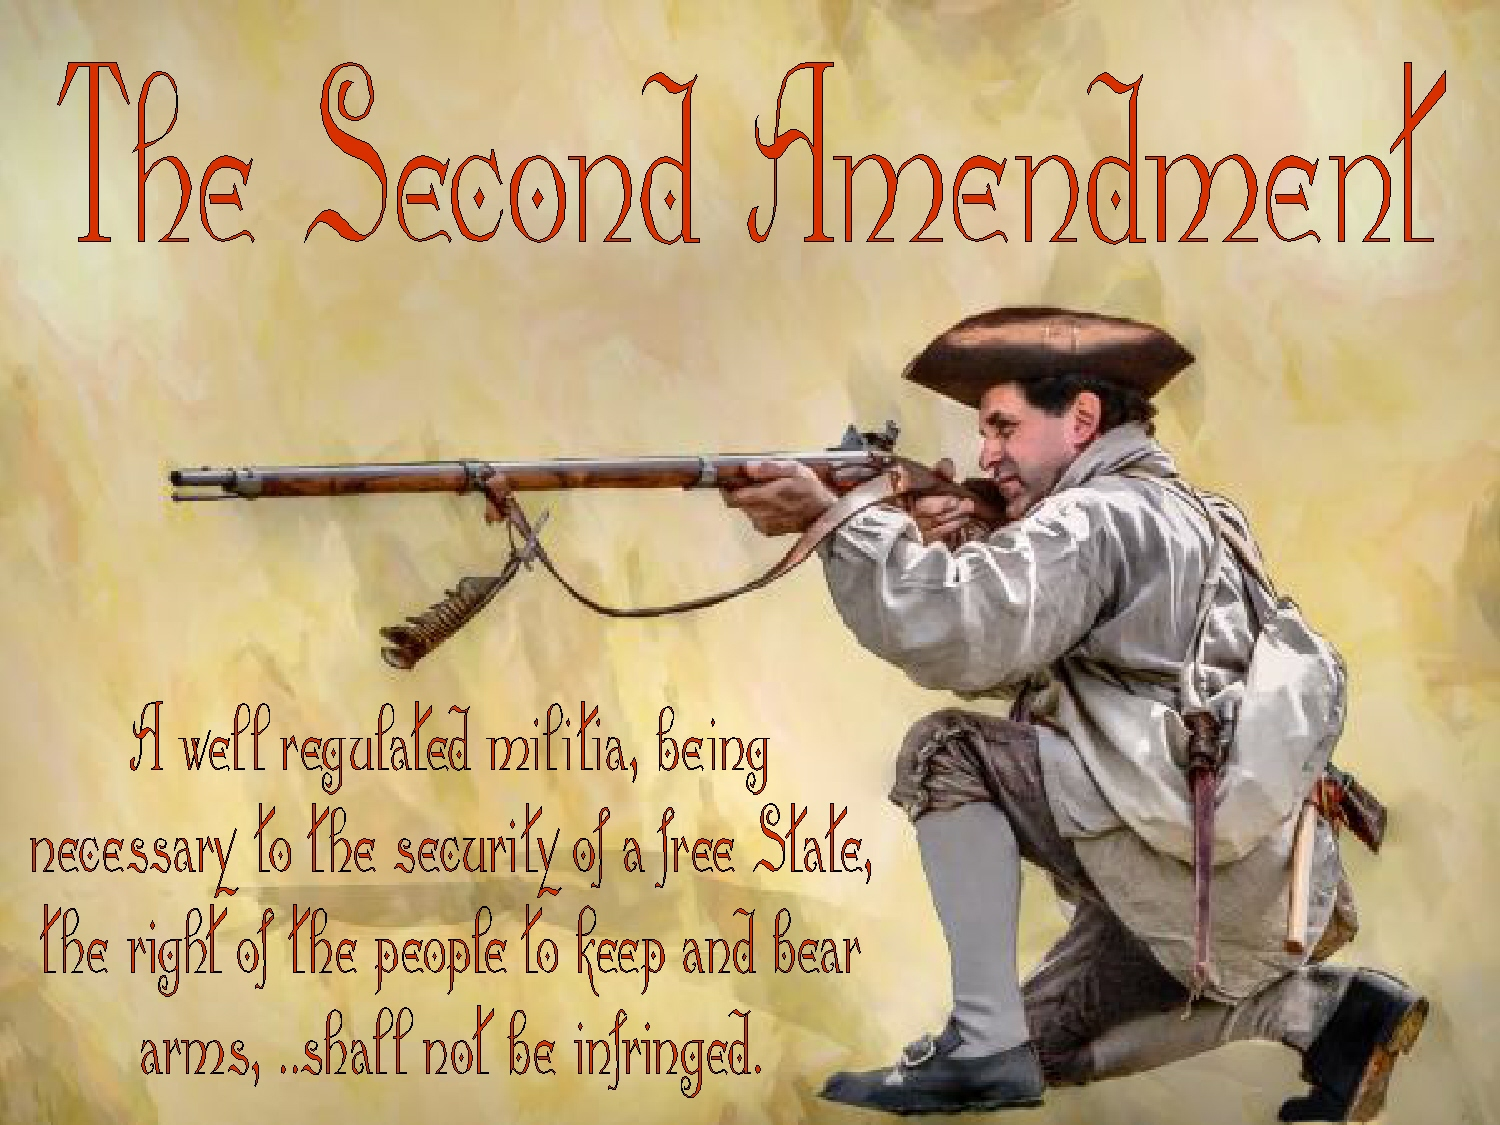 an analysis of the second amendment if the us constitution on right to arms The second amendment for kids a well regulated militia, being necessary to the security of a free state, the right of the people, to keep and bear arms, shall not be infringed -the second amendment.